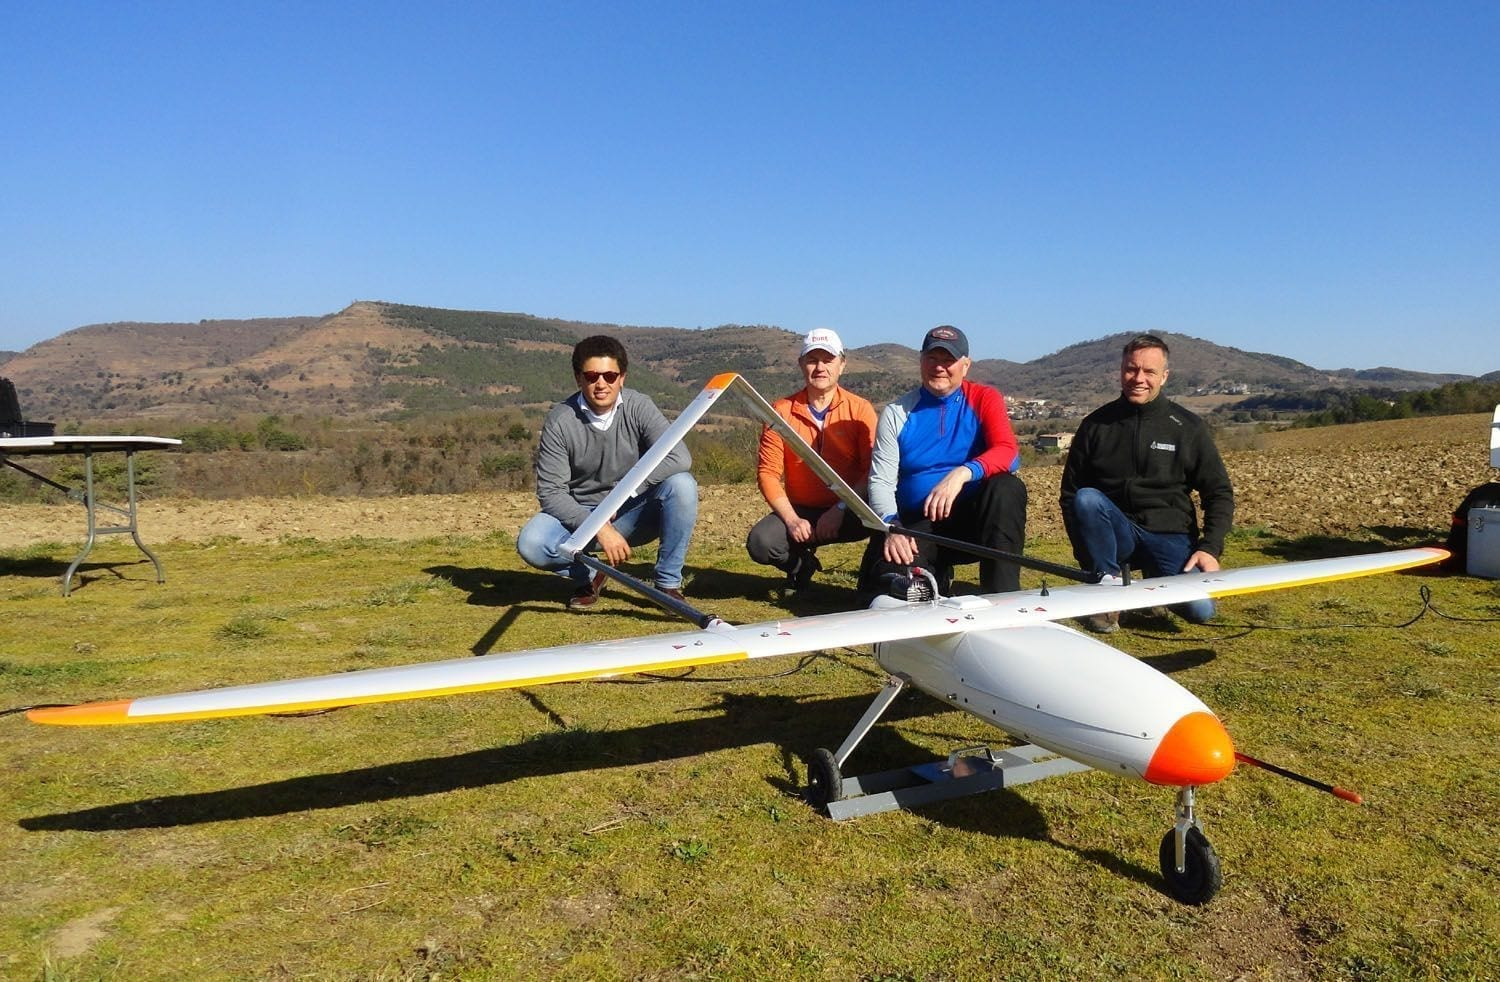 Dutch startup at BCN Drone Center